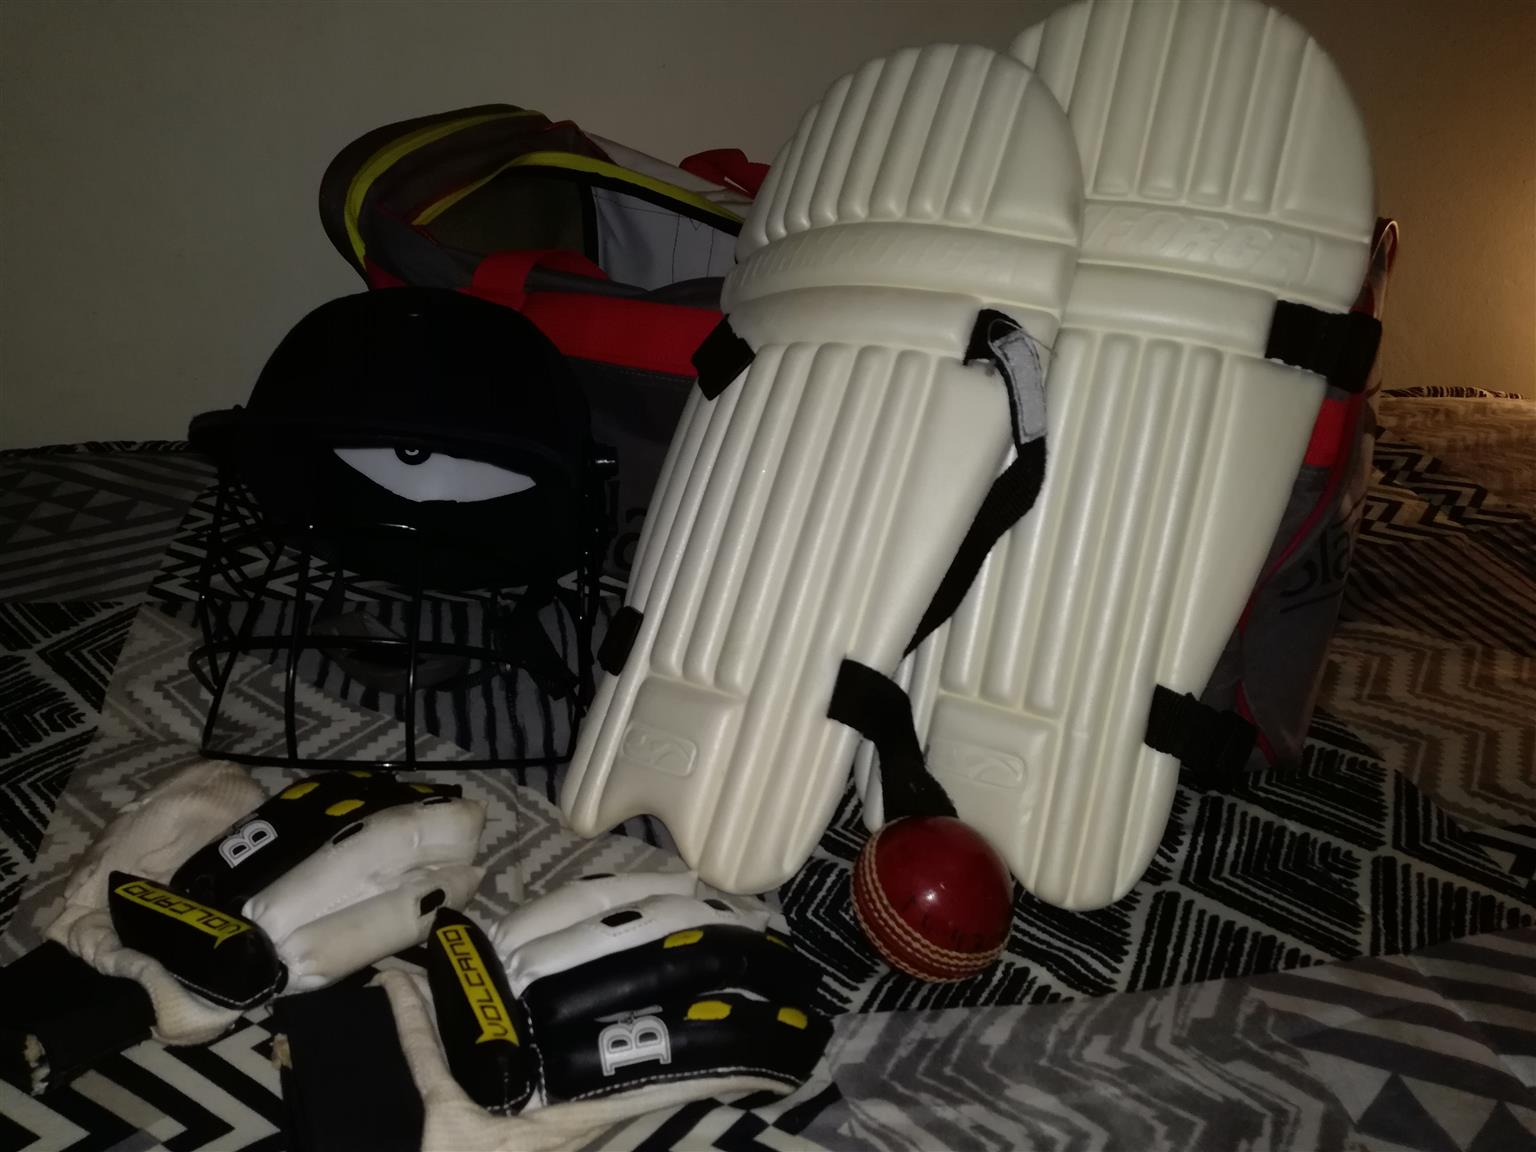 Cricket set for a child